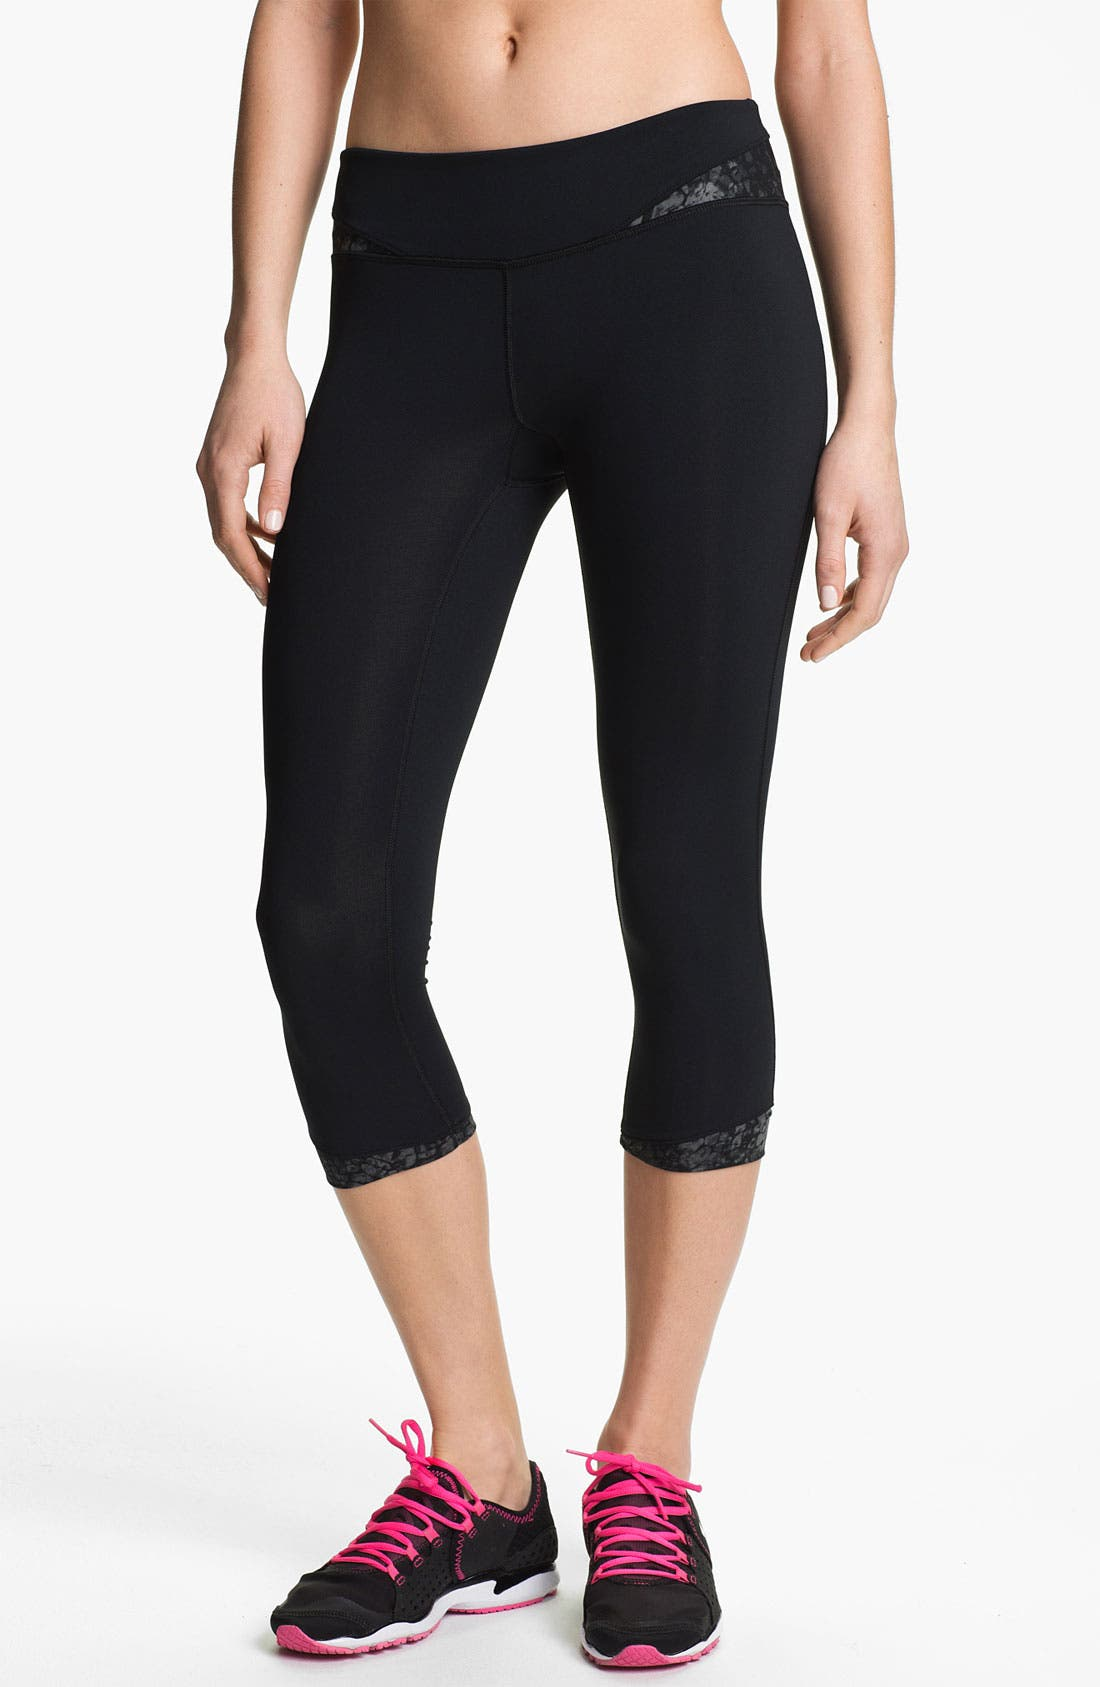 Alternate Image 1 Selected - Under Armour 'All in One' Capri Leggings